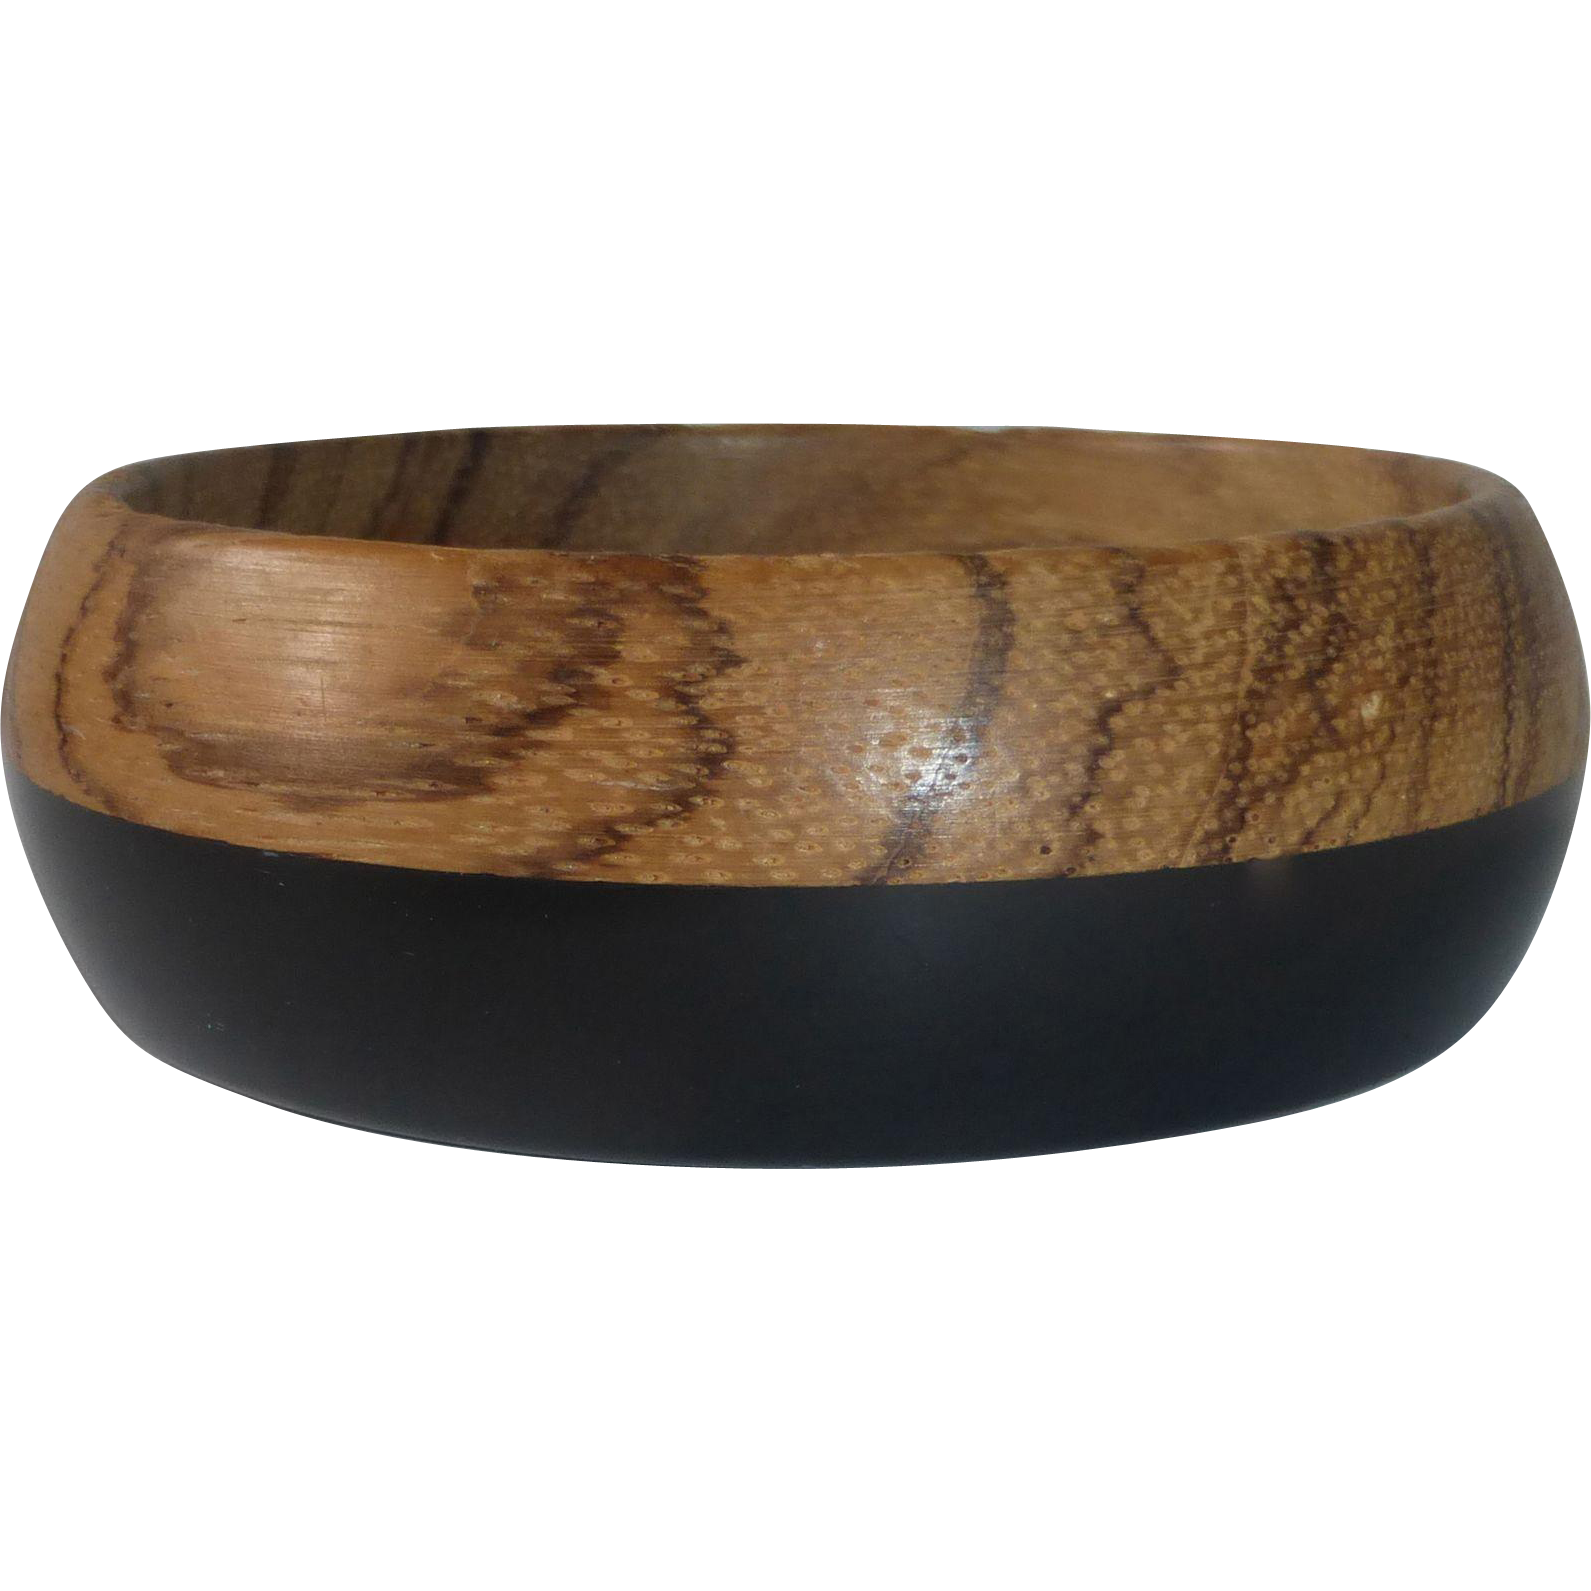 Bakelite & Wood Laminated Wide Bangle Bracelet